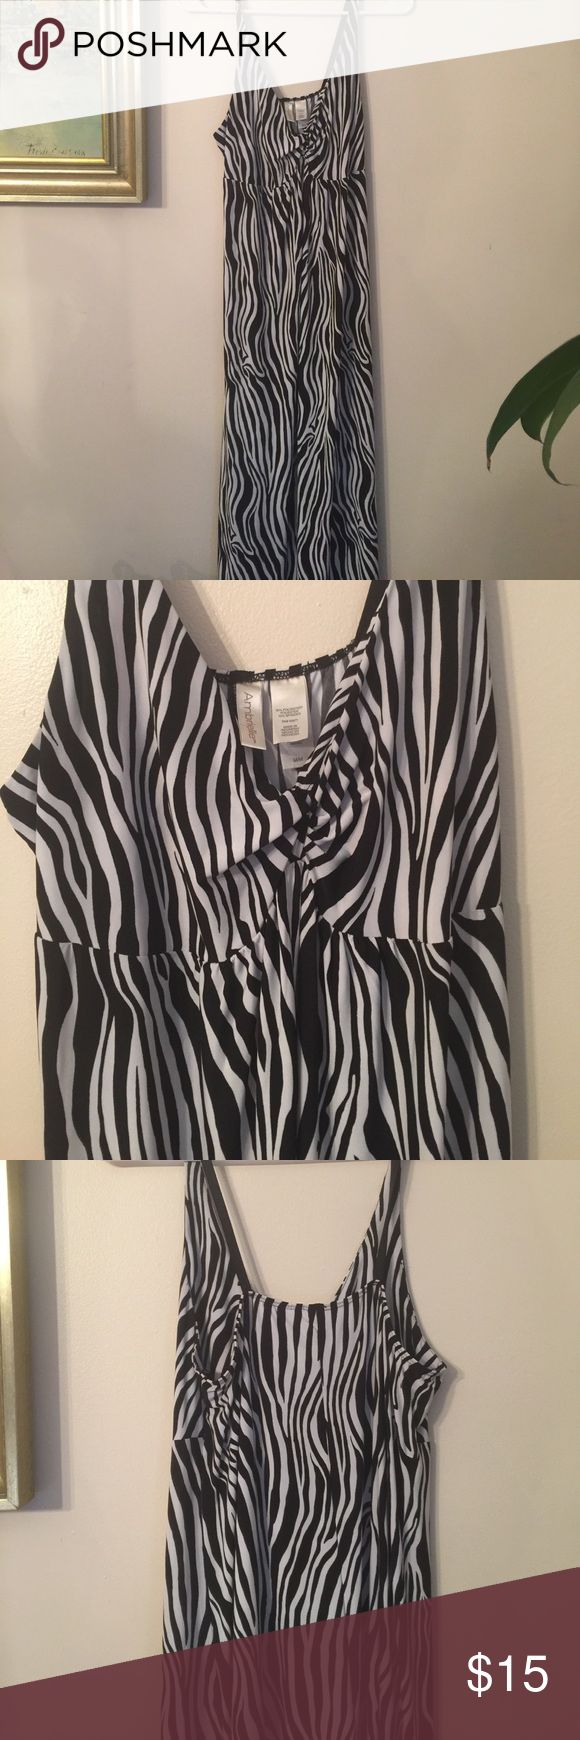 Ambrielle gorgeous zebra print maxi dress Medium black and white zebra slinky adjustable straps beach dress or just out on the town with a black duster or vest. Really sexy! Ambrielle Dresses Maxi